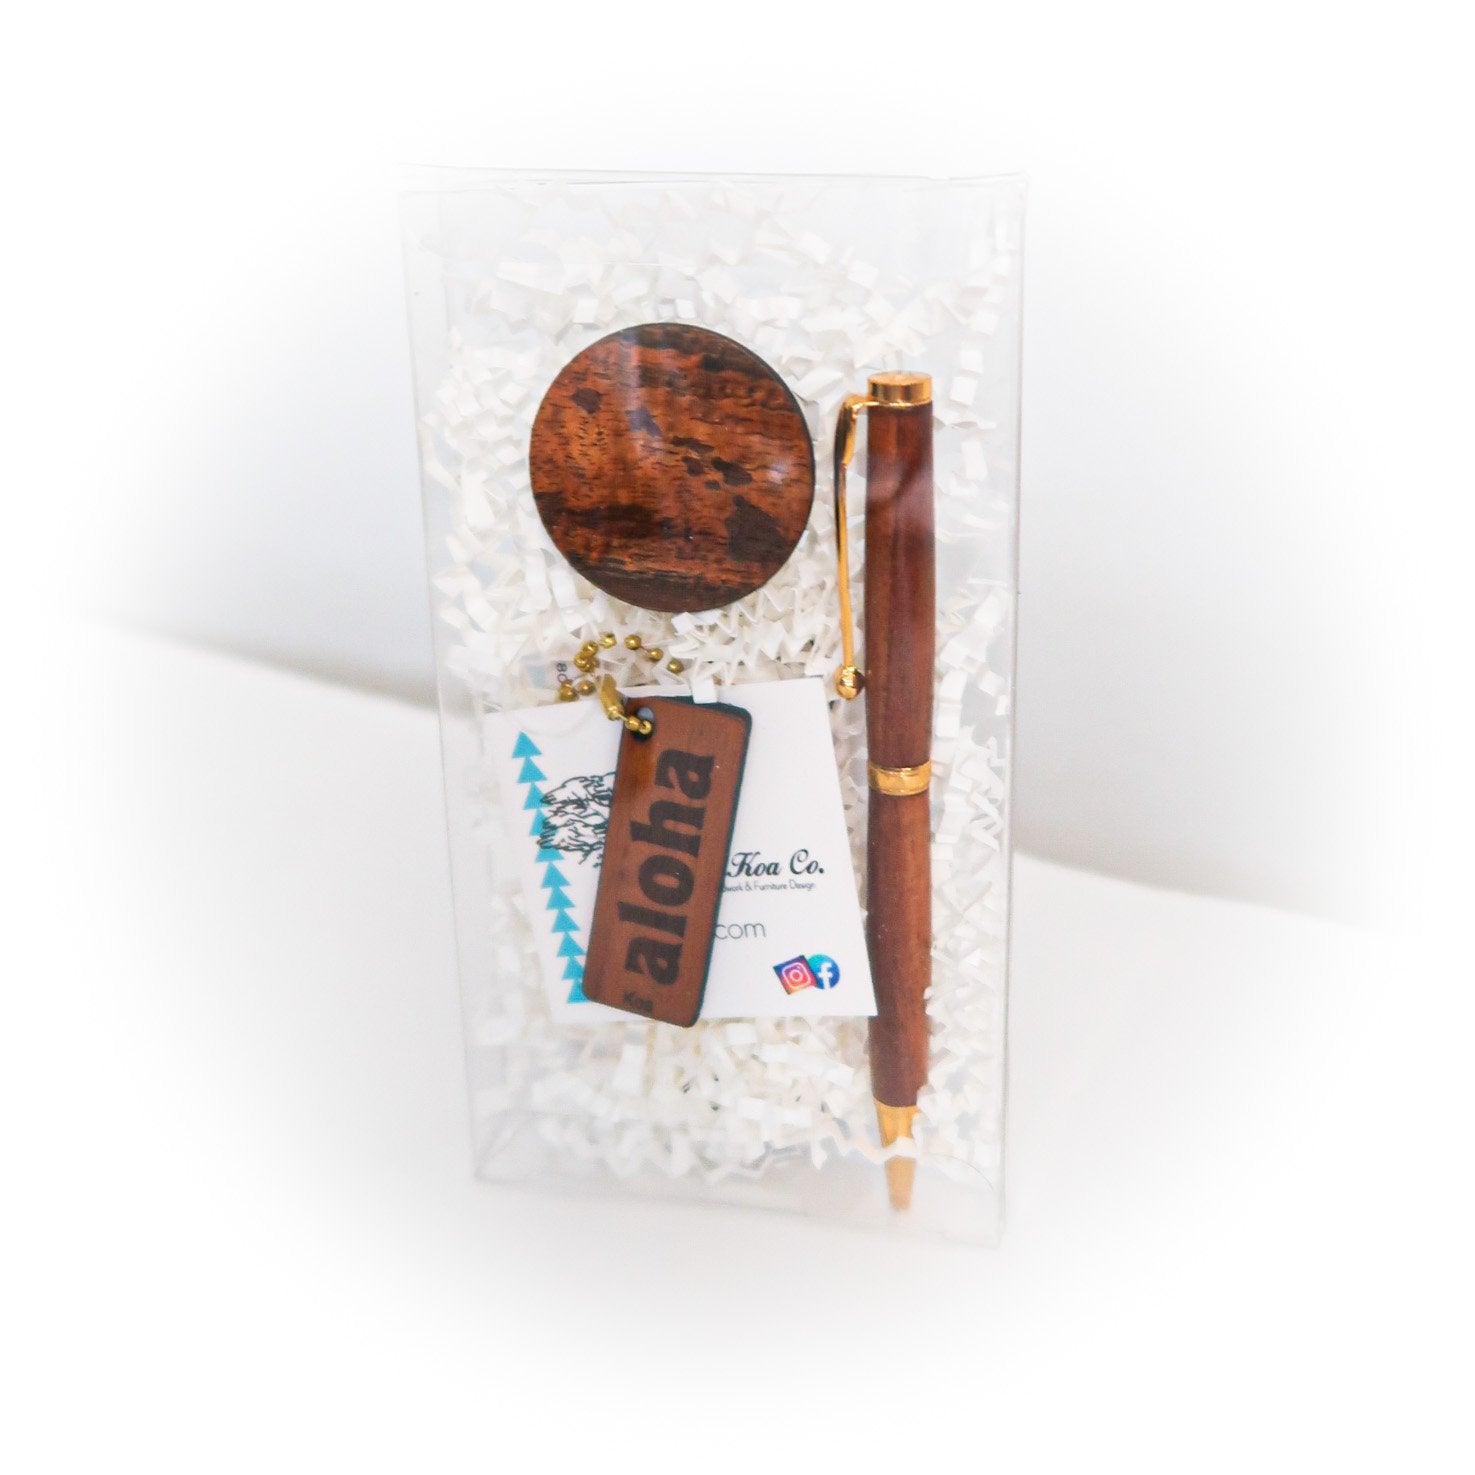 Koa Office Gift Set